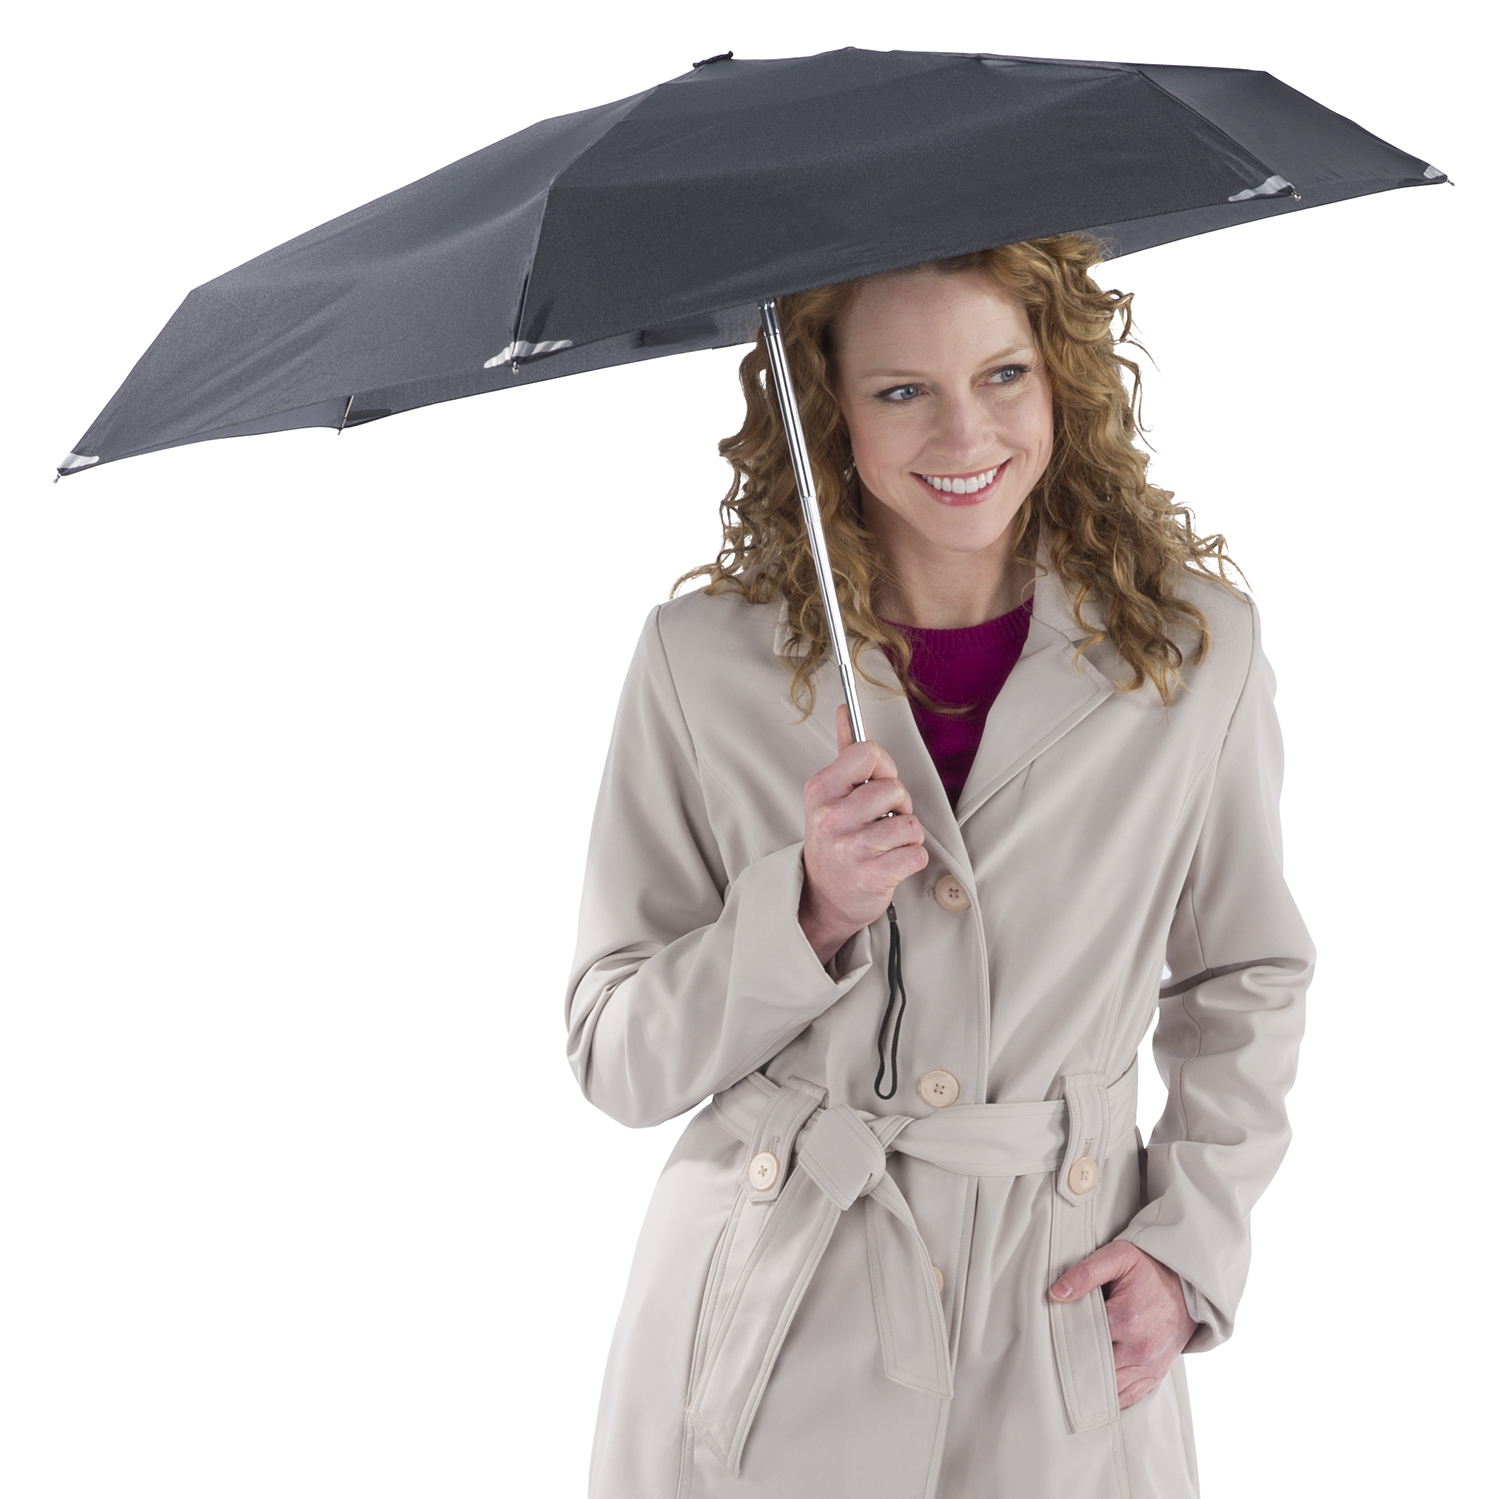 The World's Smallest Automatic Umbrella4